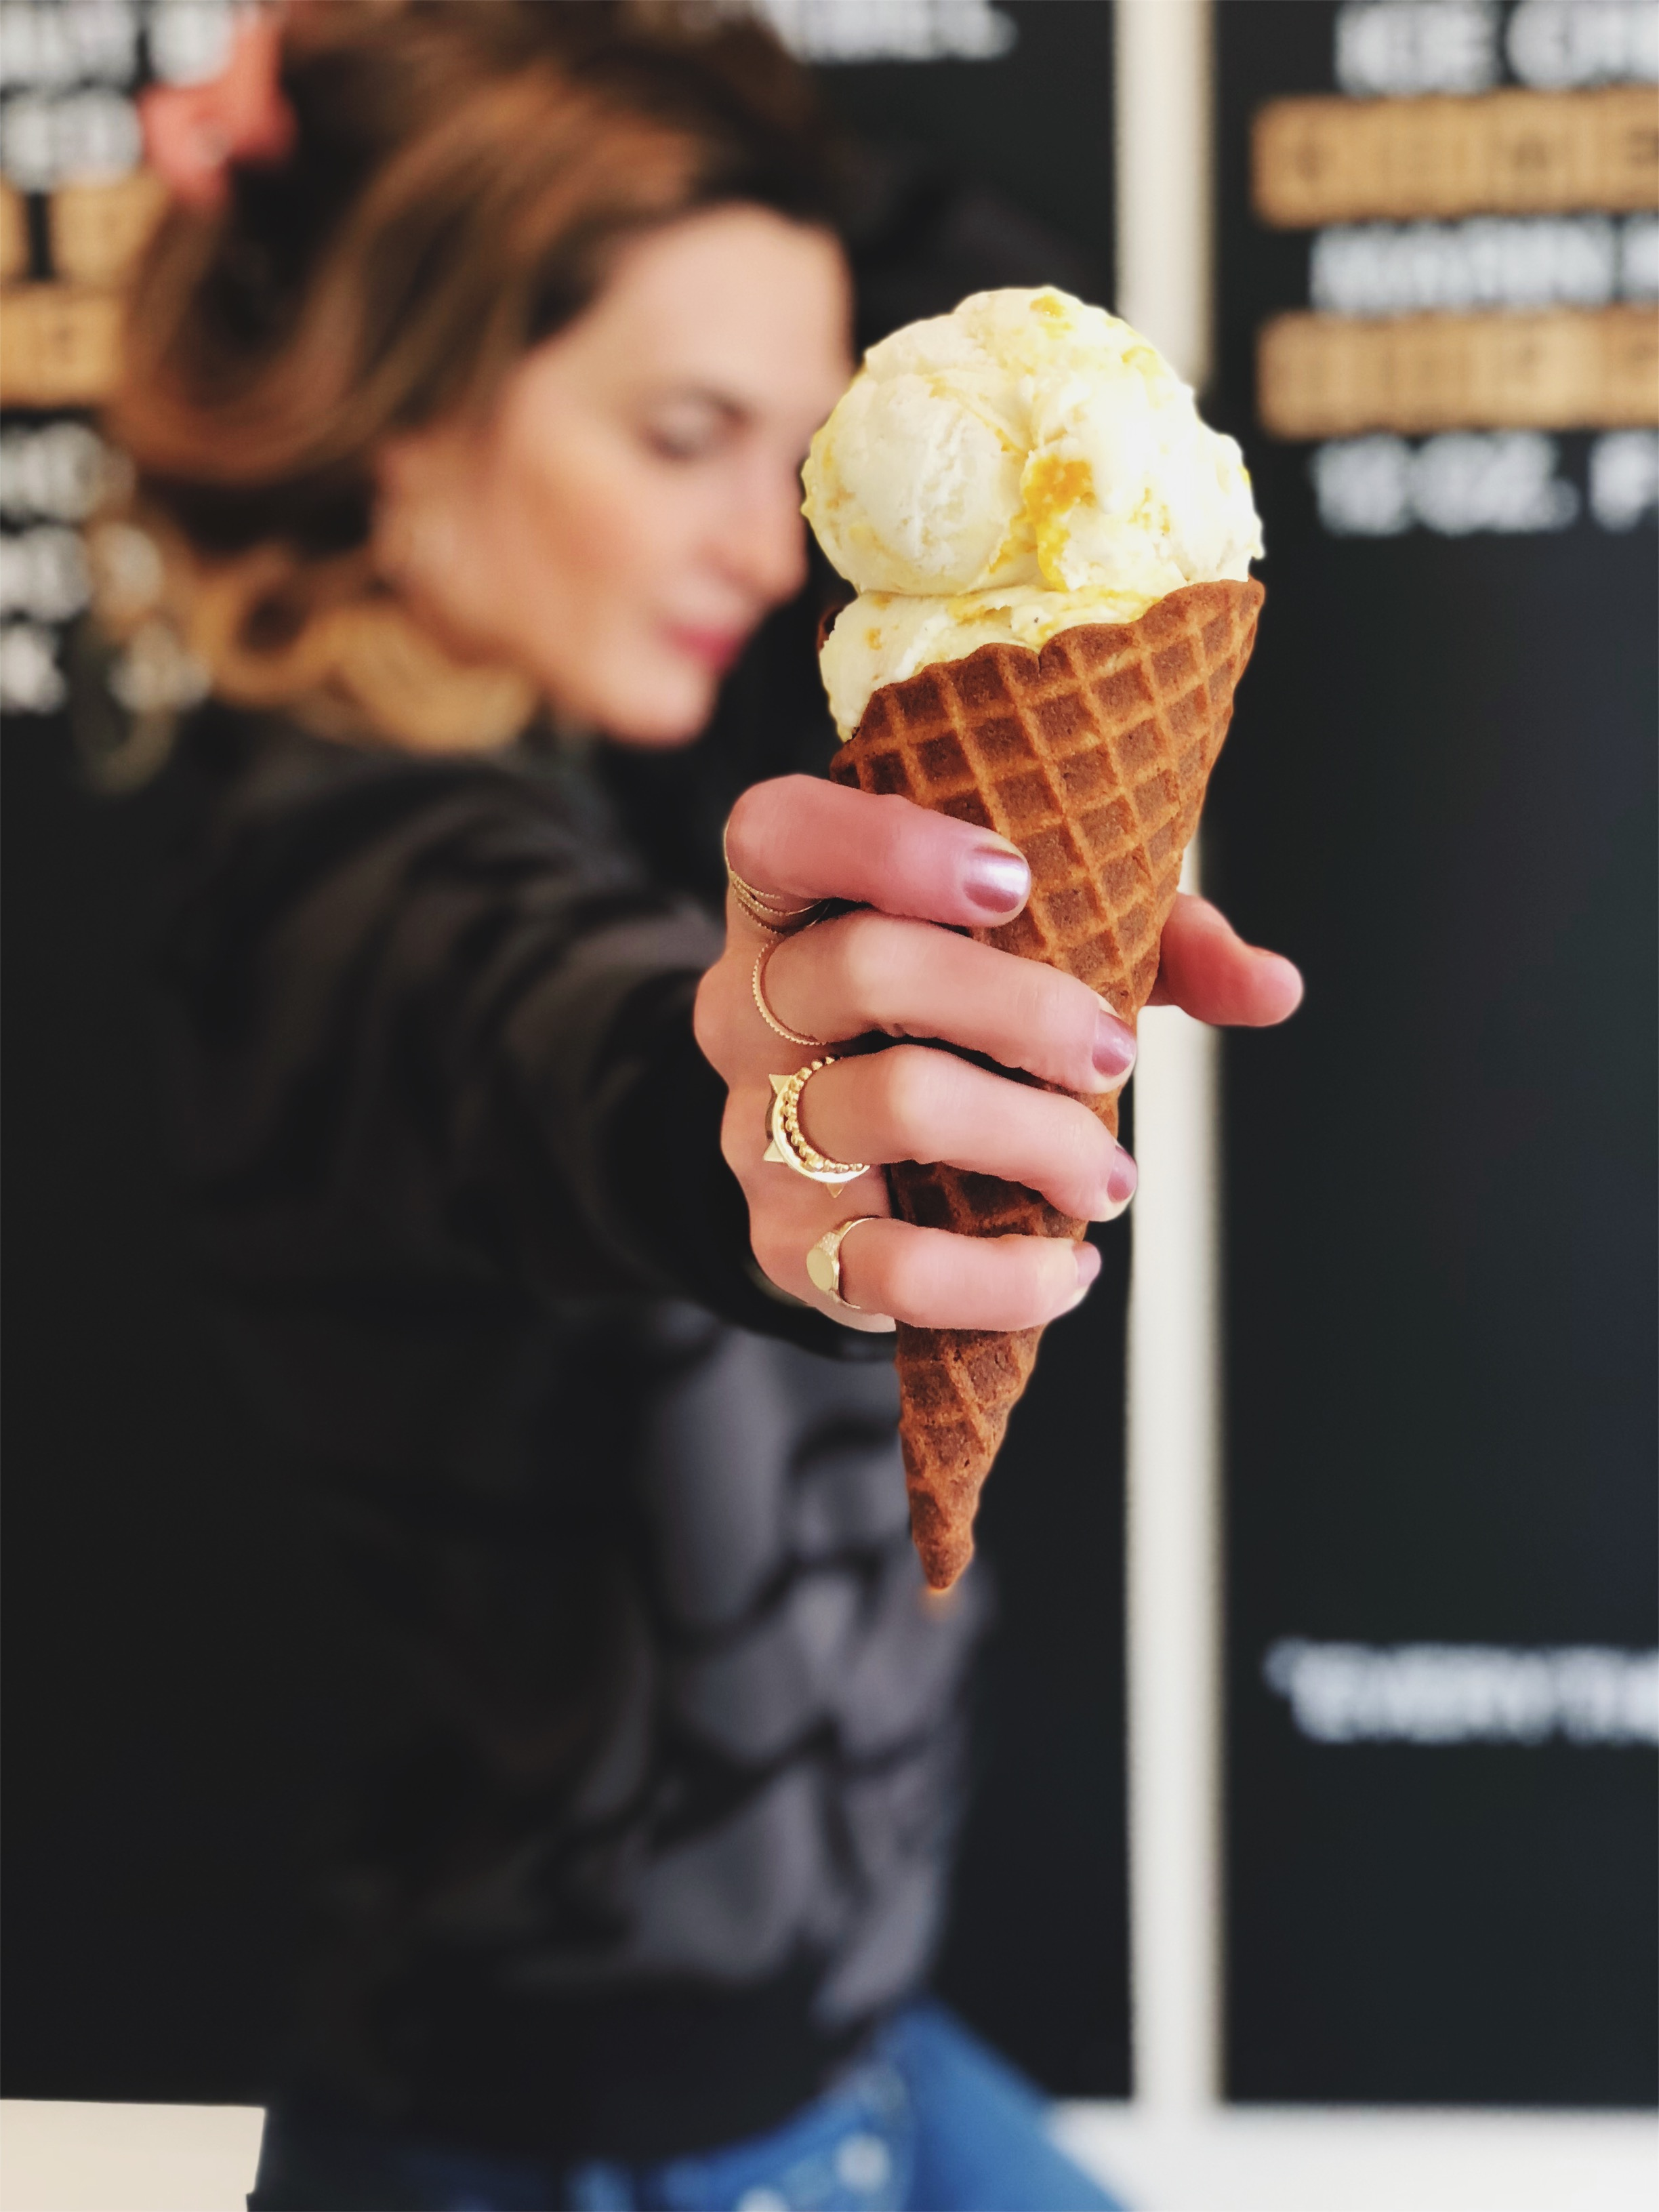 """THE KALEJUNKIE DISH: TRIGGER FOODS - Let's chat. TRIGGER FOODS. A trigger food is any food that """"triggers"""" an emotional response. For me, it's ice cream, because my ice cream binges are very vivid and very painful memories of a confused, stressed, overworked, and unhappy version of myself. I'd routinely binge at home on gallon size containers of mint chip ice cream in order to feel more in control of stressful situations in my life. Then I'd purge, because purging on ice cream is really easy to do. I did this hundreds of times. The days of the ice cream binges are GONE, but I still don't keep it in my house. Not because I'm afraid of a relapse, but because I acknowledge that it's my trigger food, and I've turned the negative relationship I had with this particular food into a positive one. For me, that now means enjoying it outside of my home, creating memories with my boys and friends."""